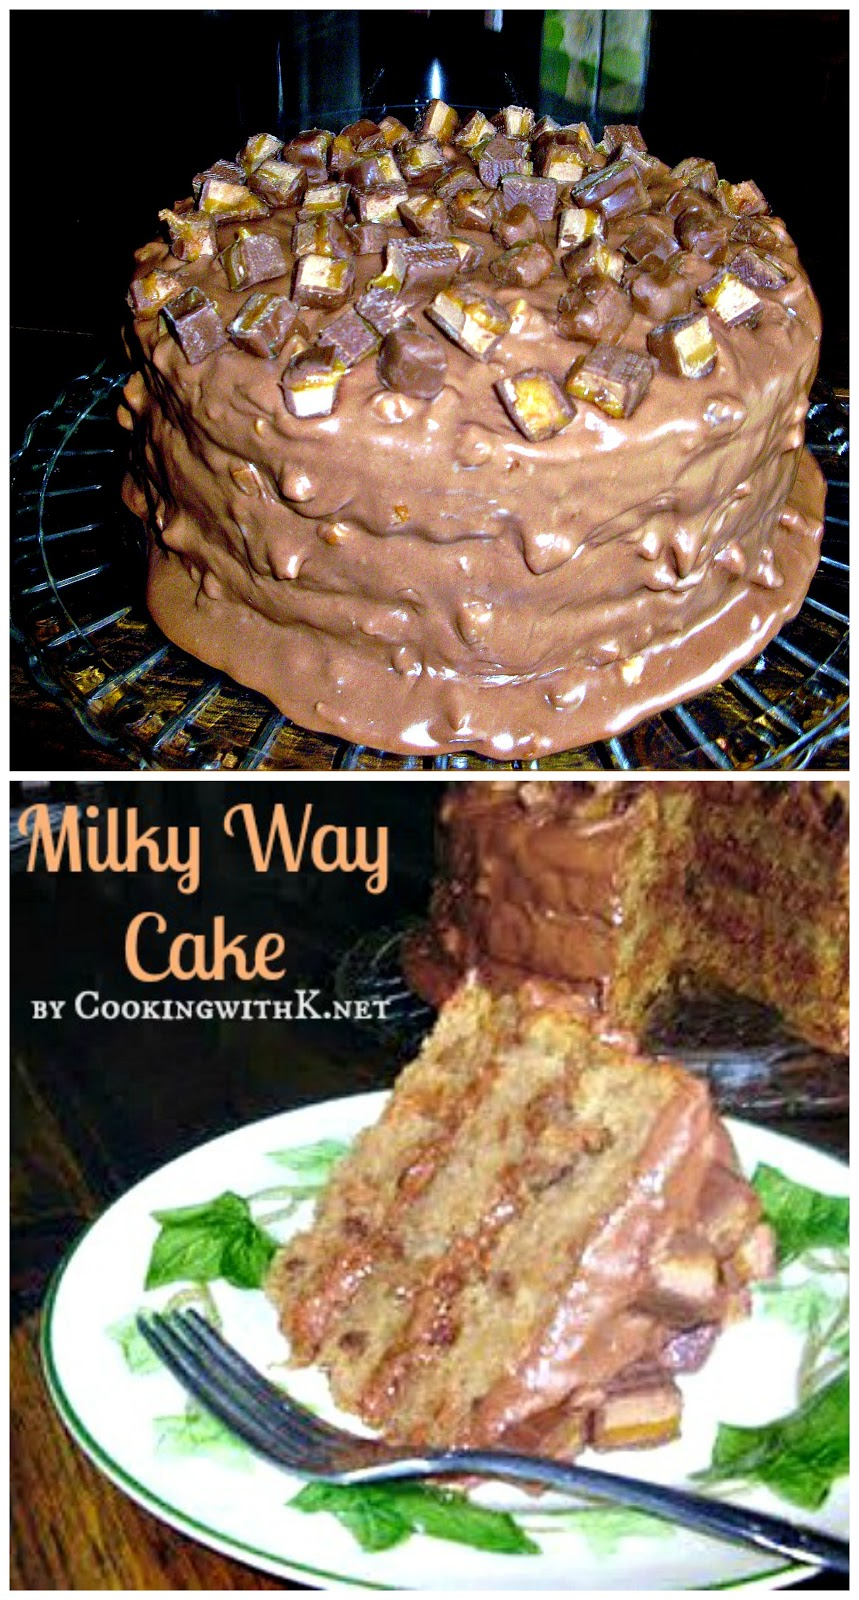 Cooking with K: Milky Way Cake